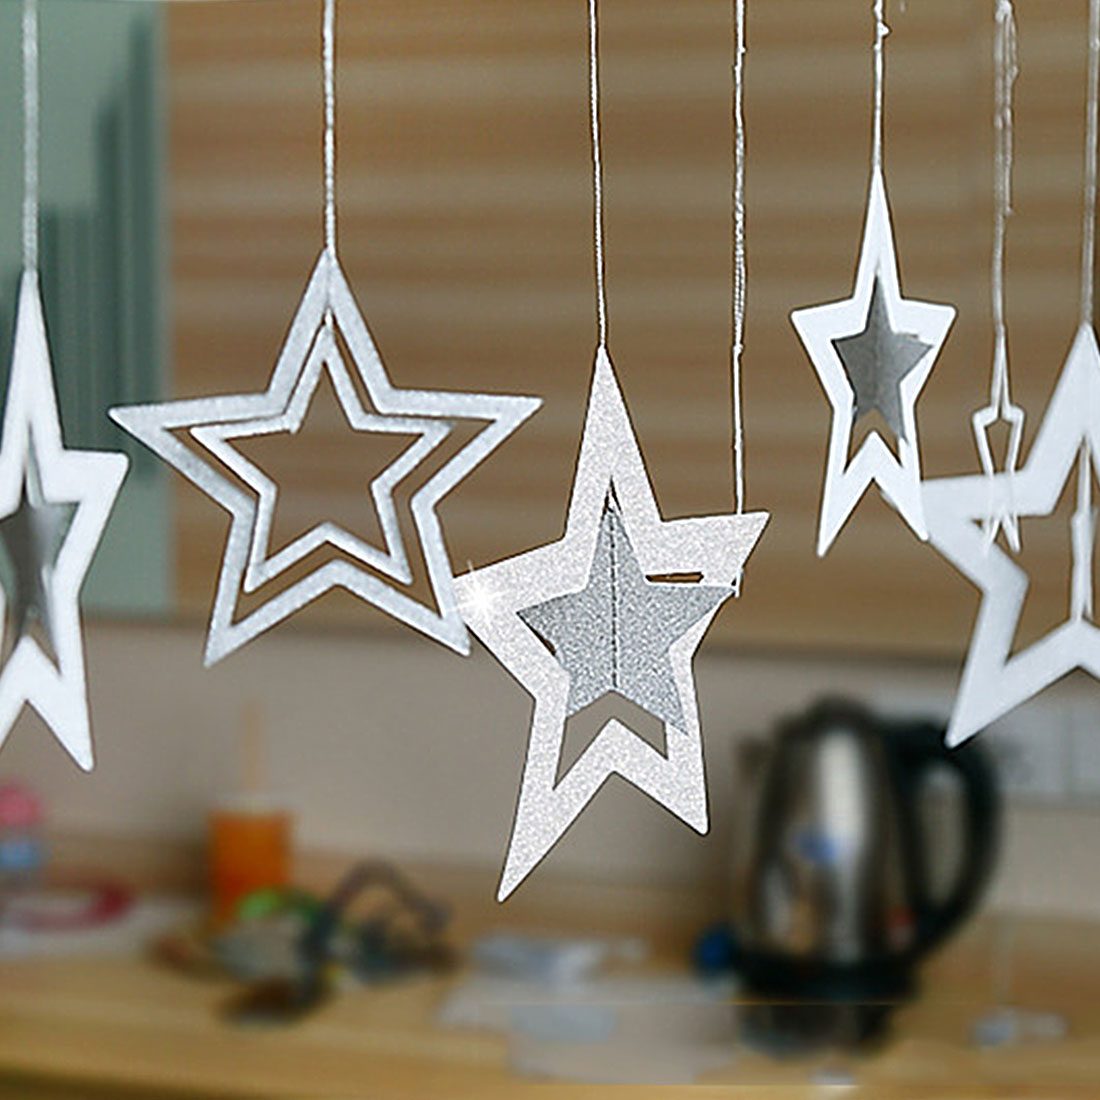 Hot Hollow Star 7pcs/lot Set of Straps Christmas New Year Festivals Wedding Ornaments Ceiling Mounts